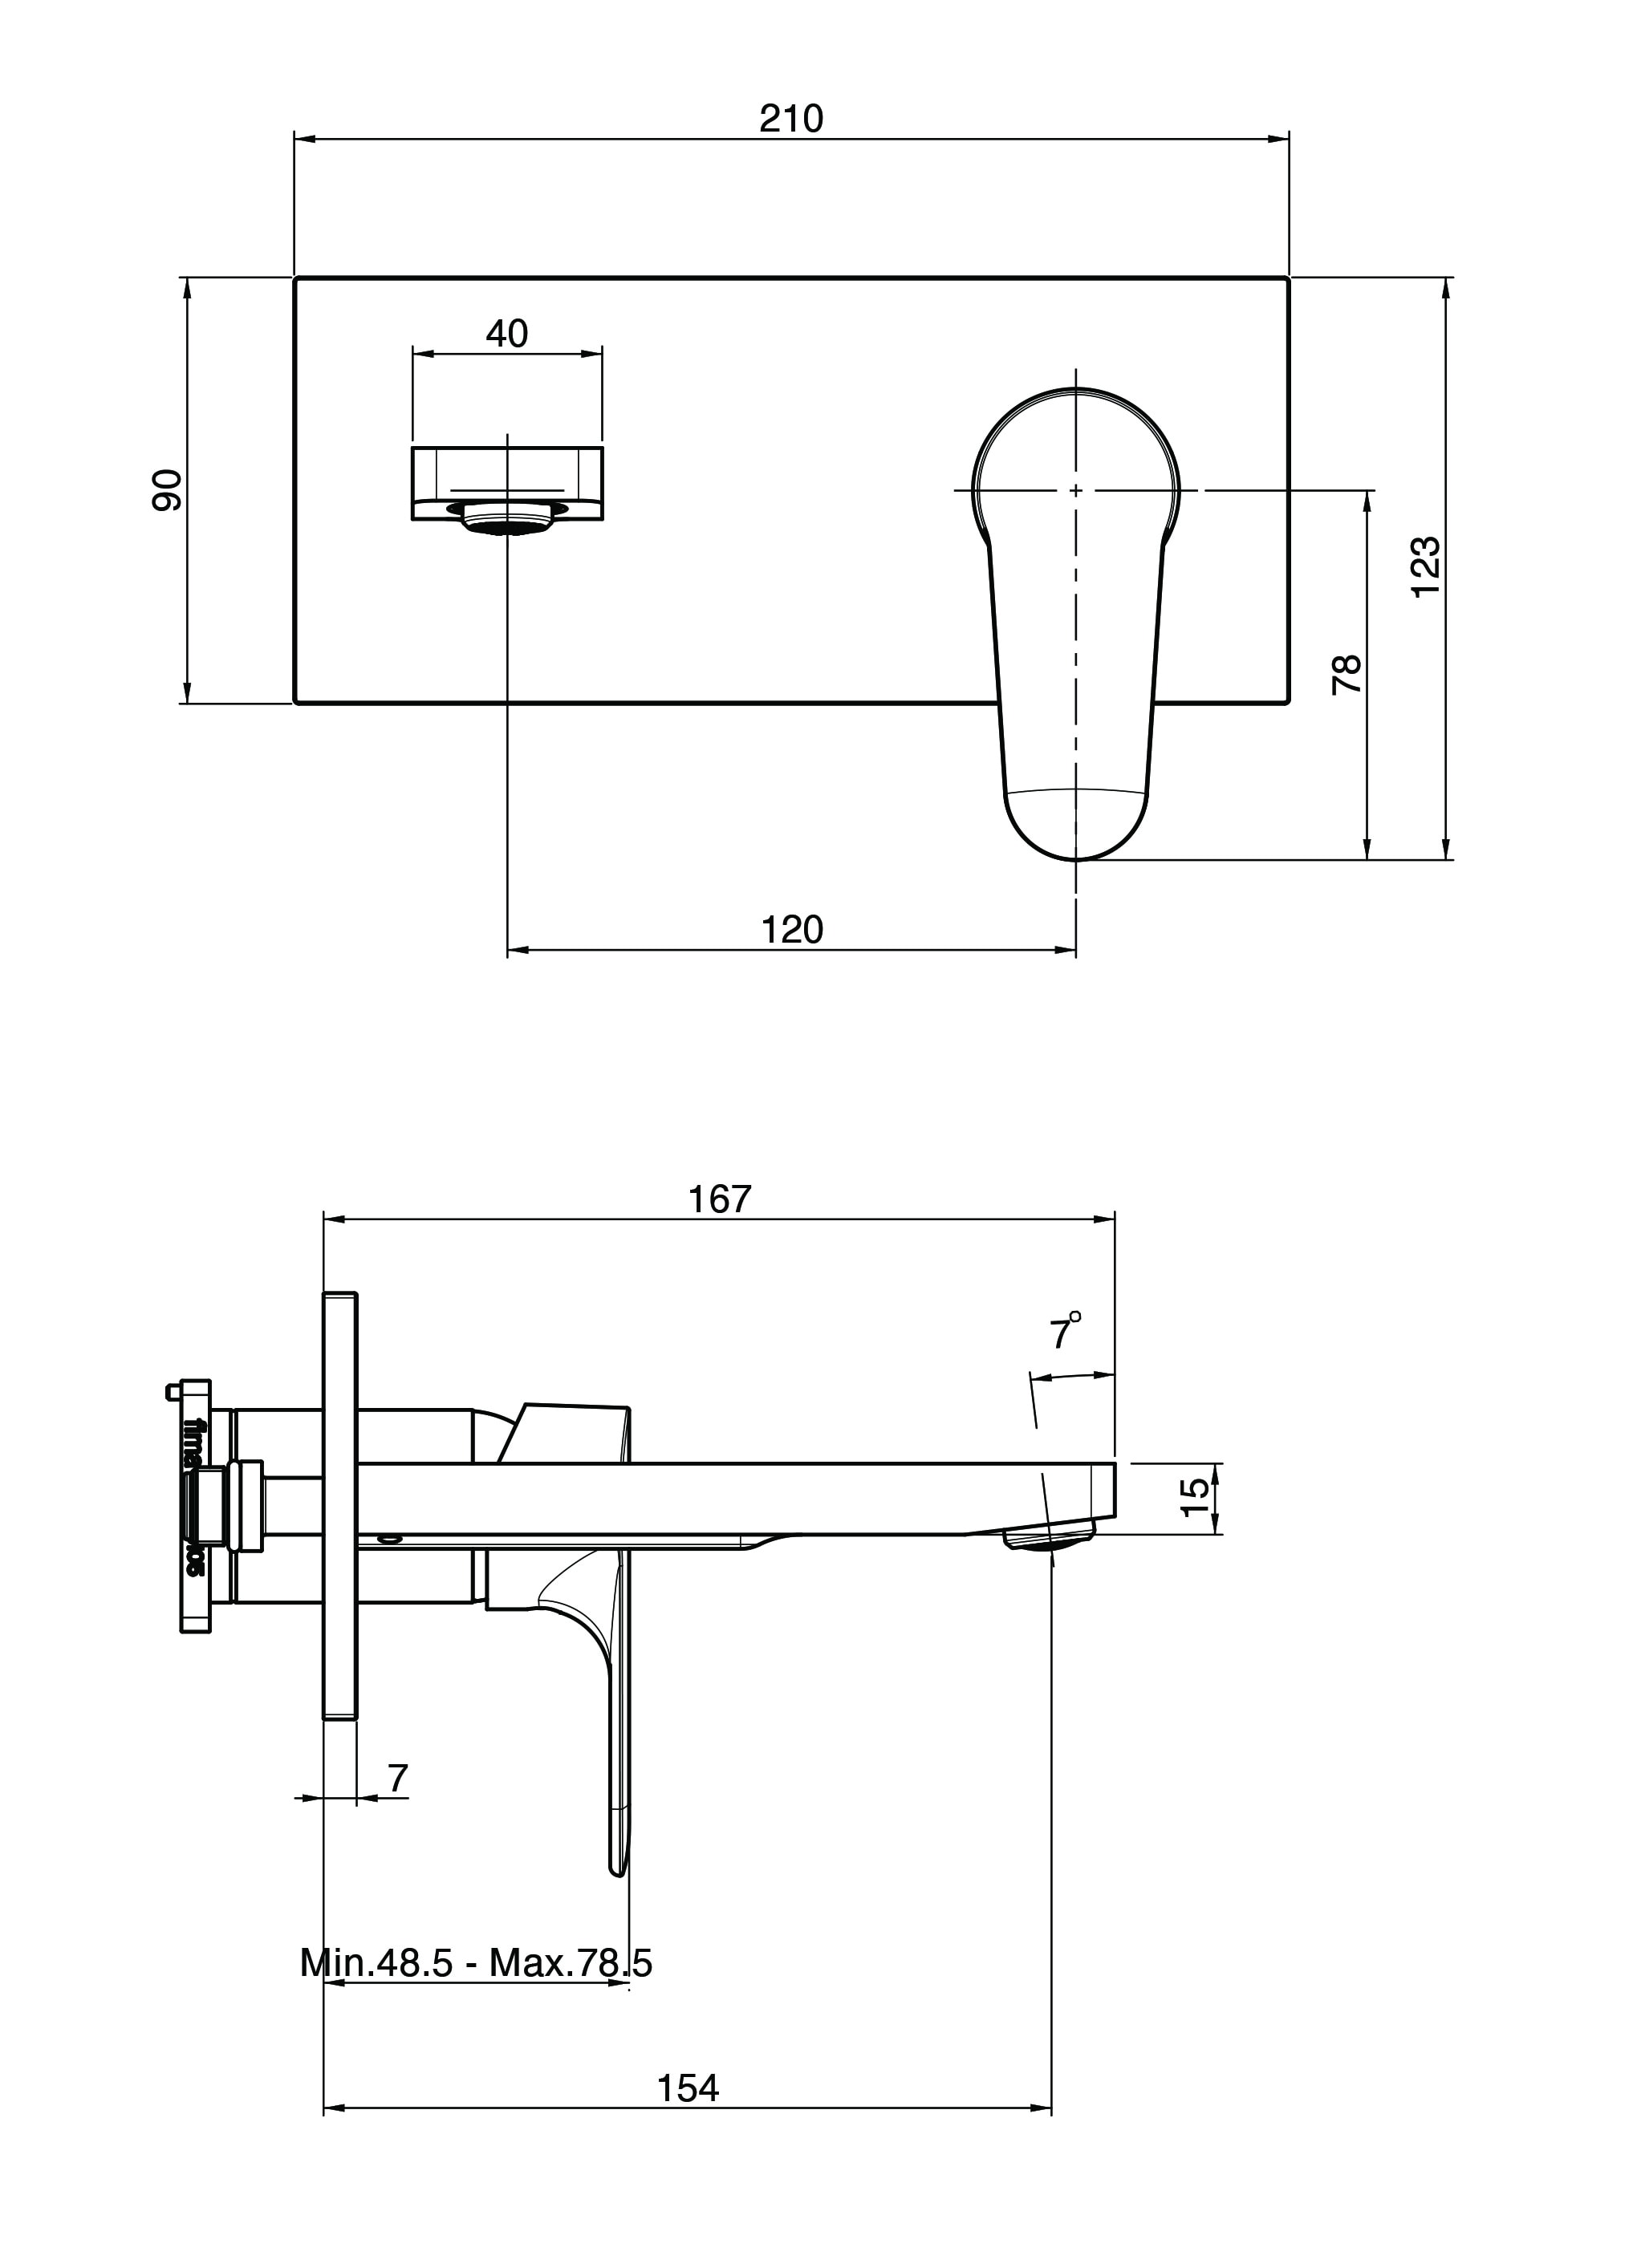 Fima Series22 Wallbasinmix 167 F3830x5 Technical Drawing